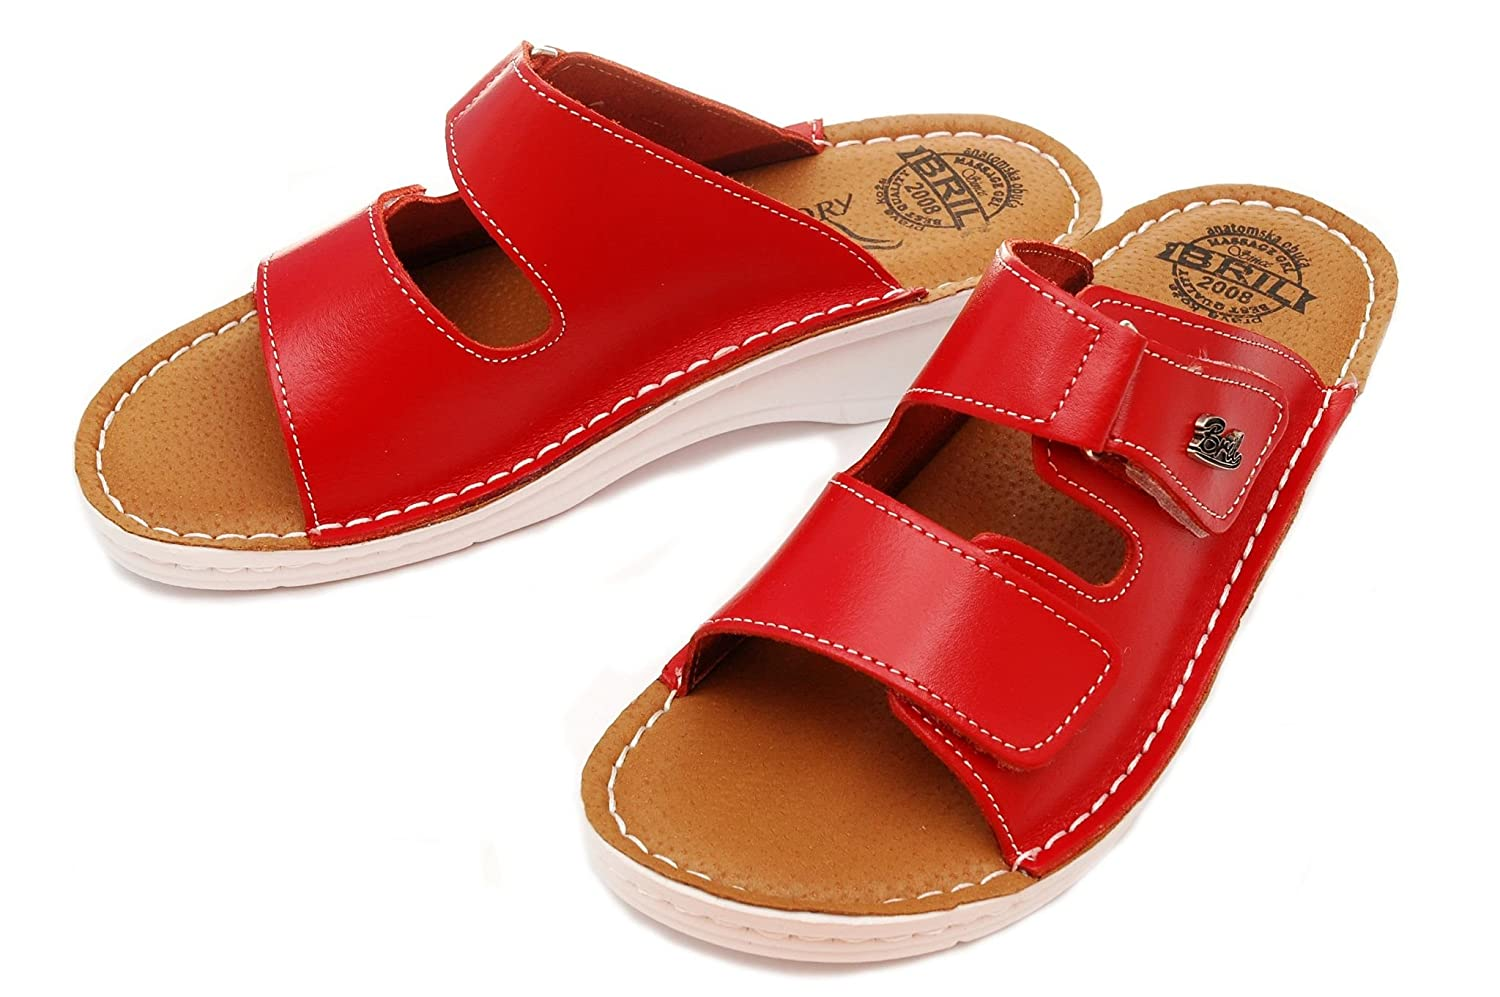 3620c0d0068be BRIL Dr Punto Rosso D54 Leather Slip-on Womens Ladies Sandals Mule Clogs  Slippers Shoes  Amazon.co.uk  Shoes   Bags